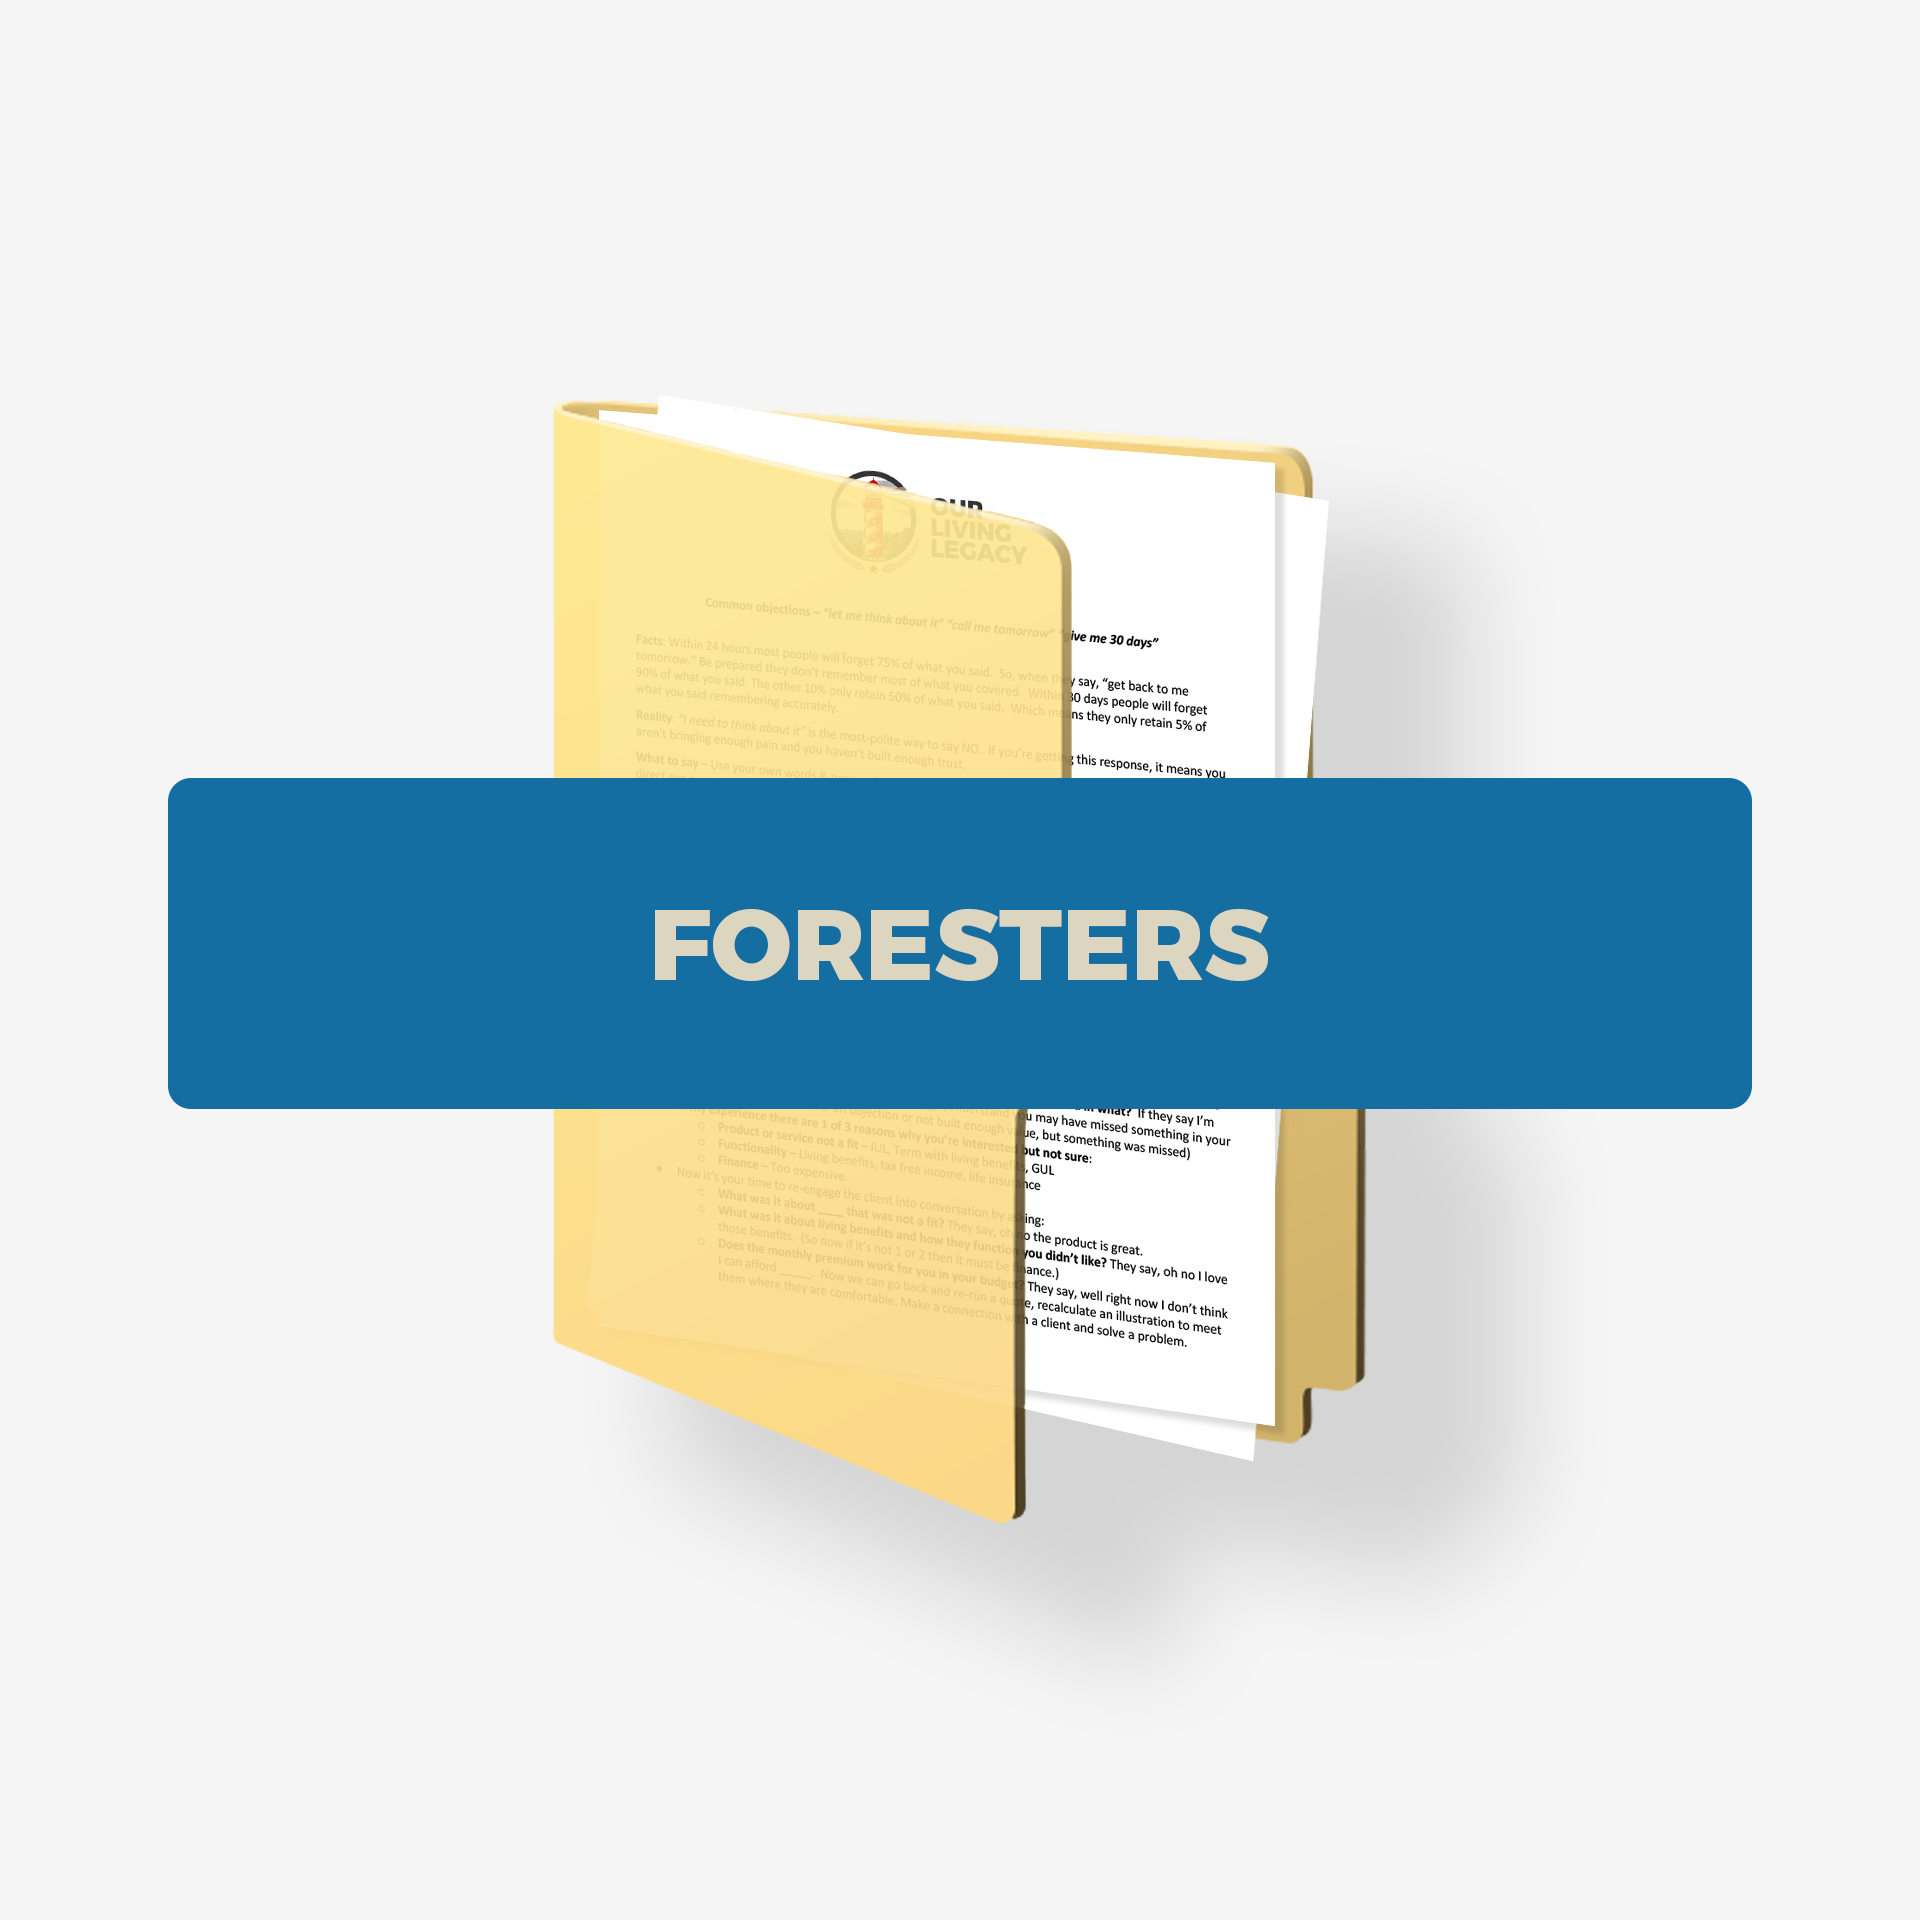 Foresters.png